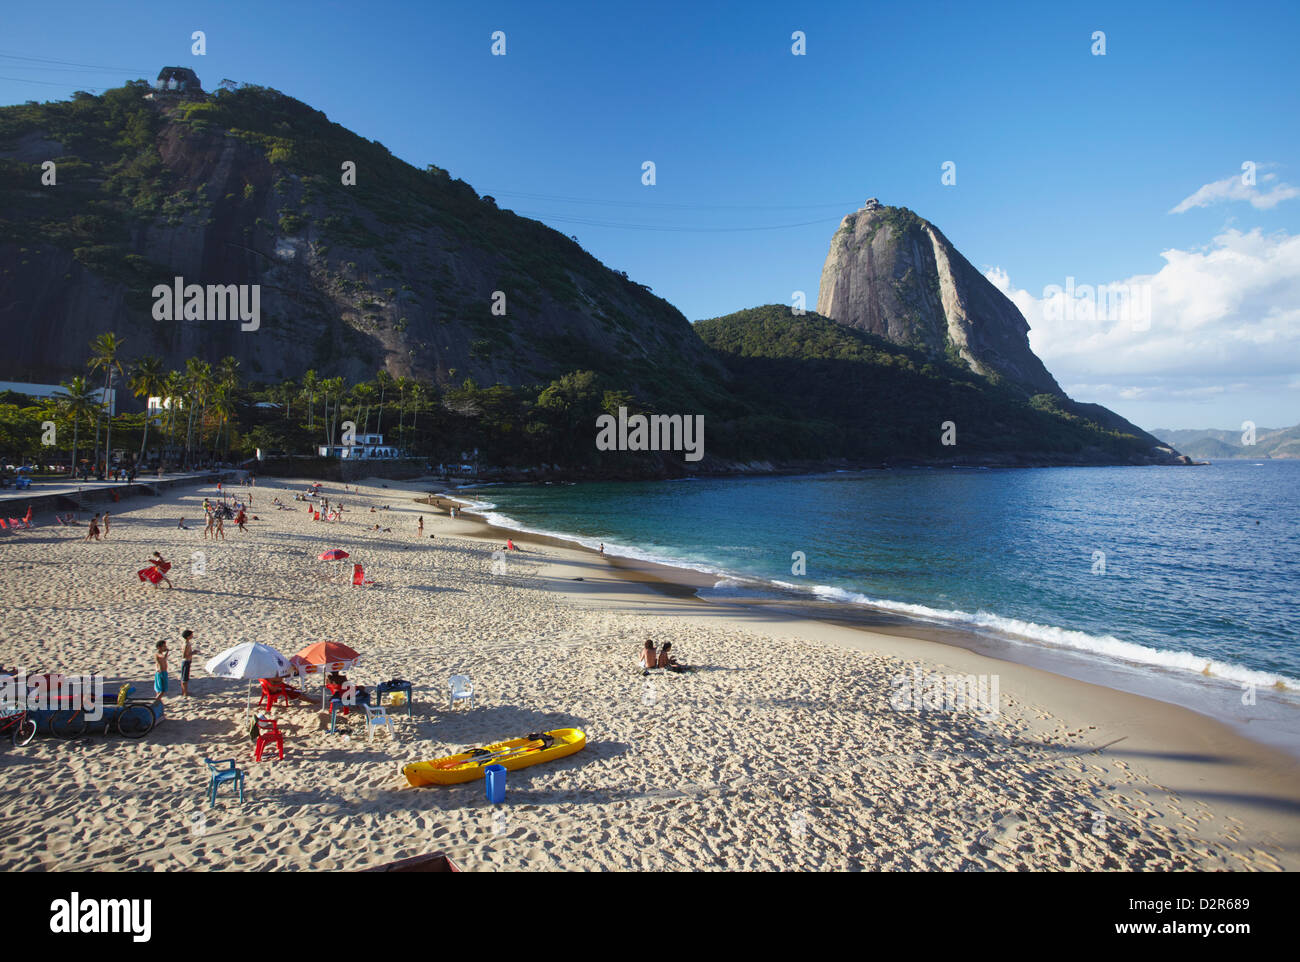 Praia Vermelha with Sugar Loaf Mountain in background, Urca, Rio de Janeiro, Brazil, South America - Stock Image